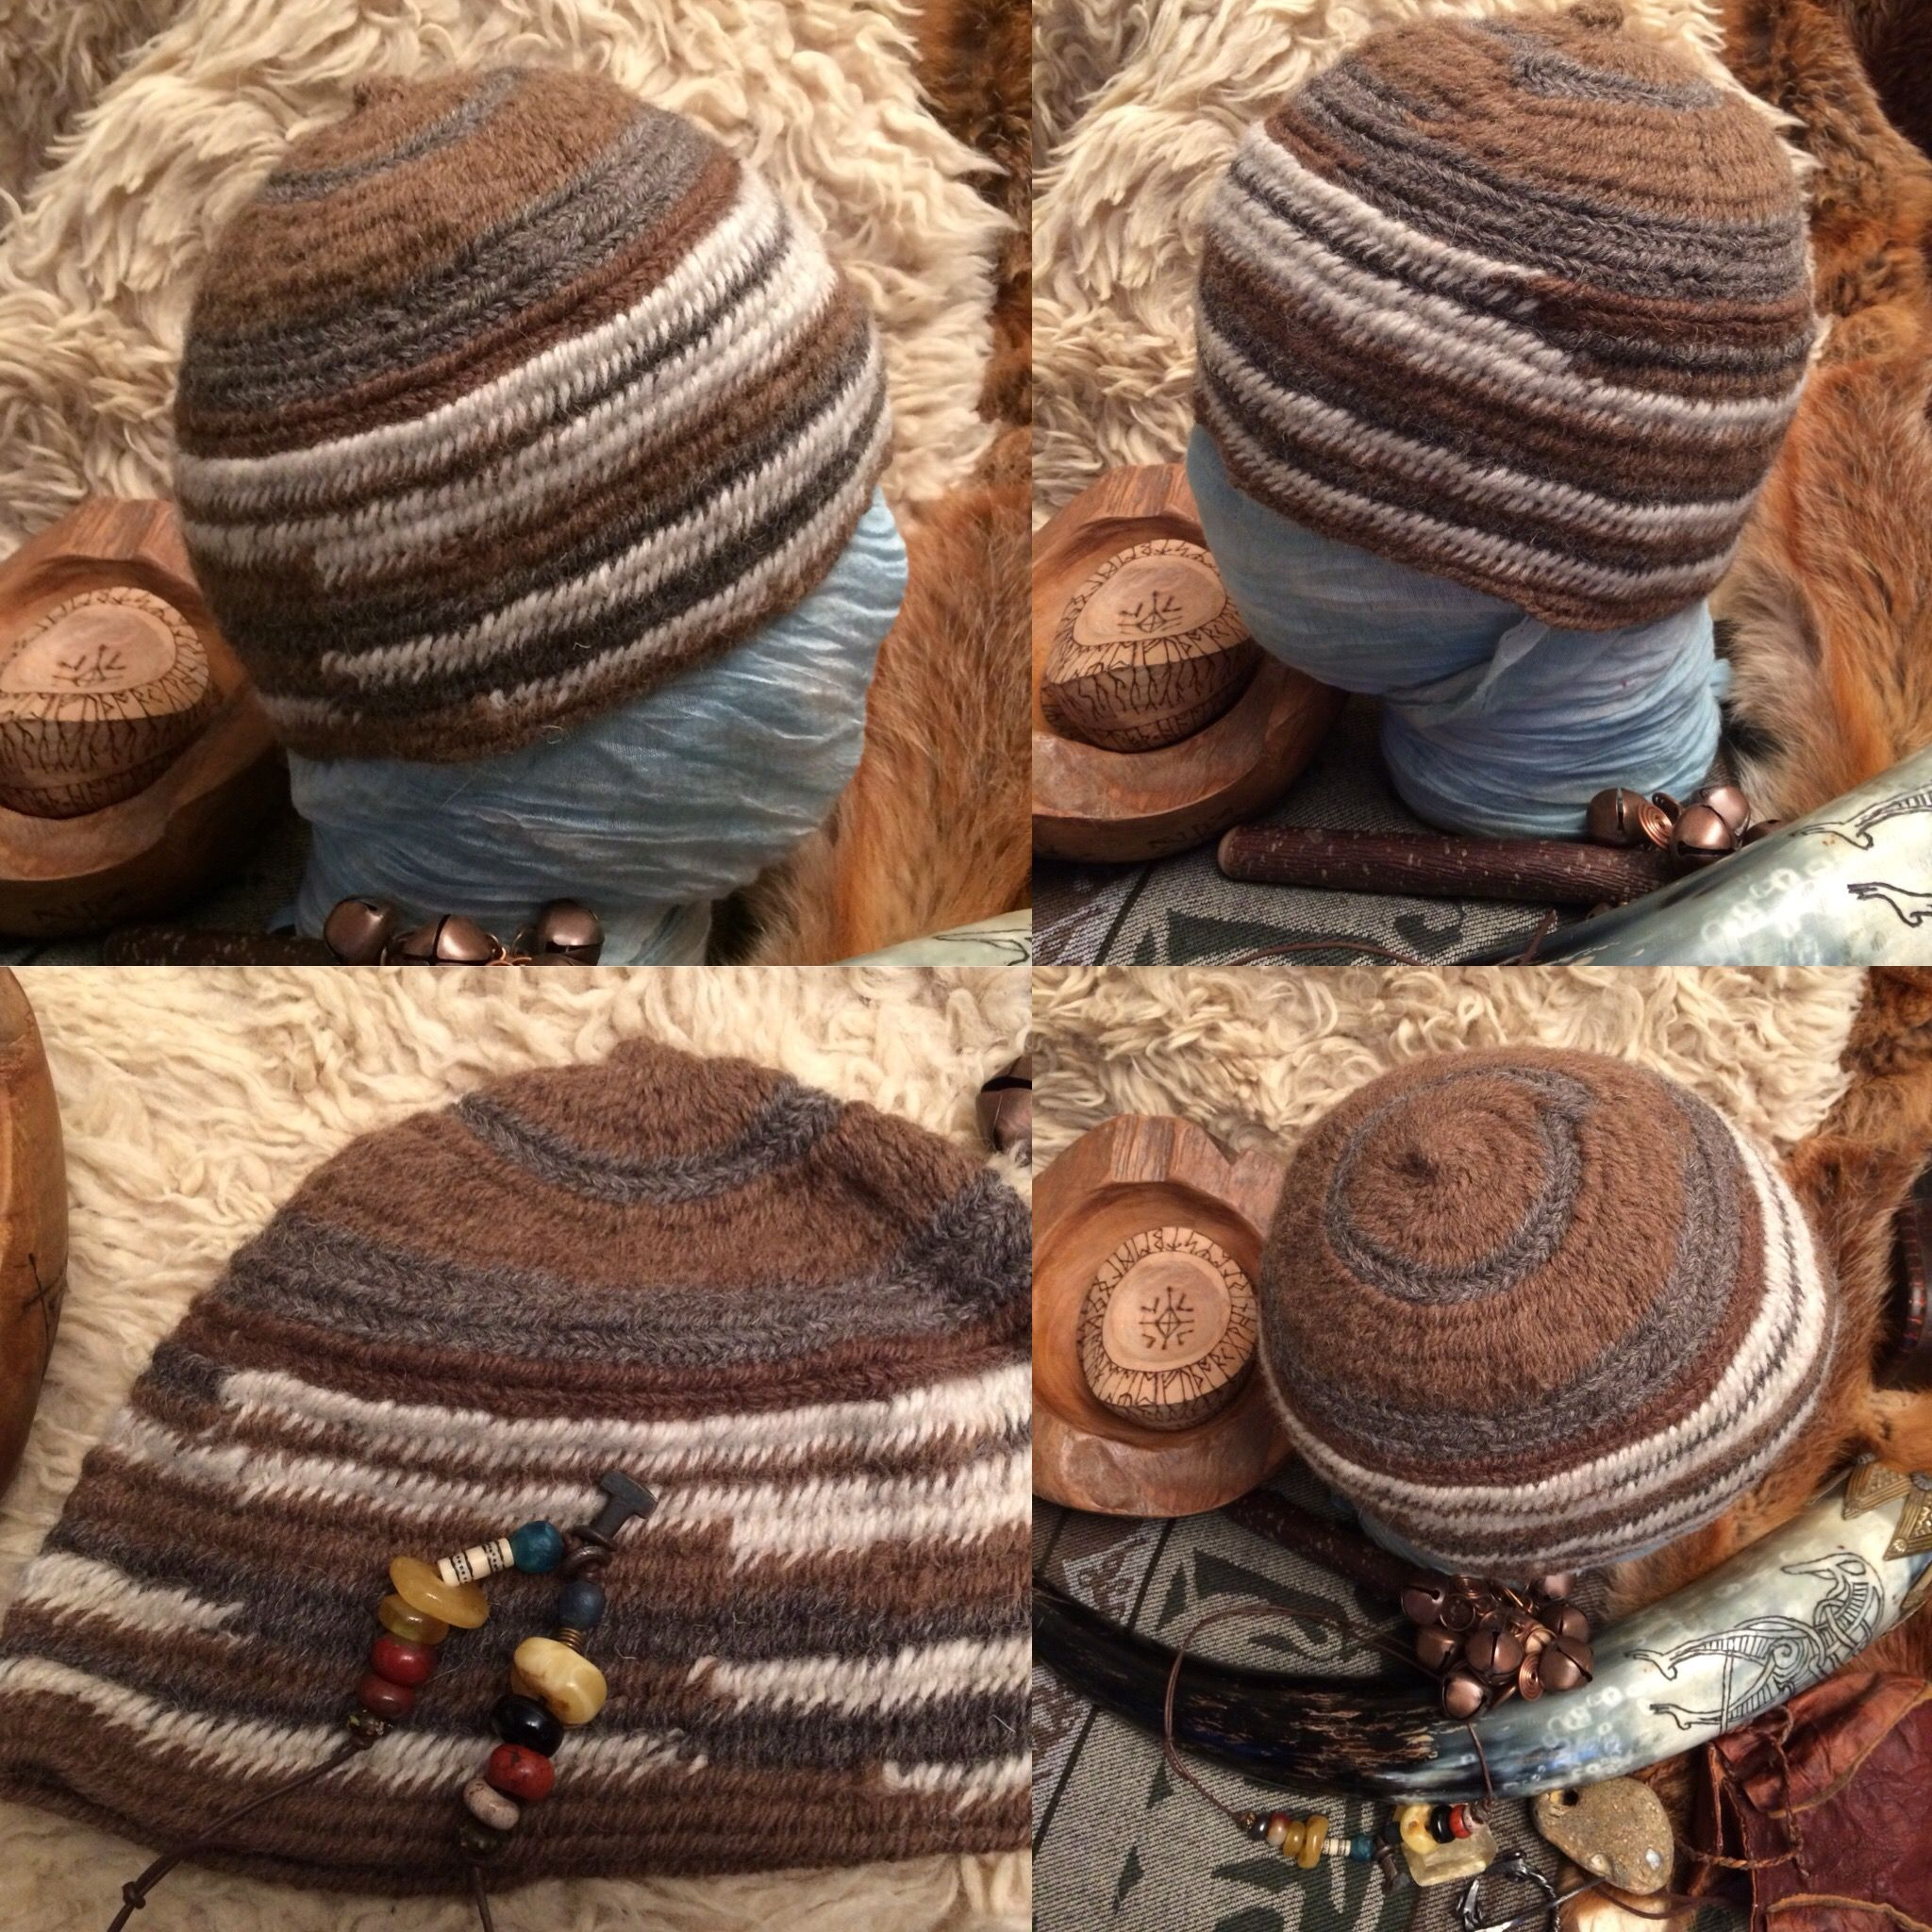 Nalbinding Hat Rare Breed Shetland & Jacobs Wool Viking Anglo-Saxon Reenactment Naalbinding in archaeology stitches woad trim reenactment hv220hcZ1w